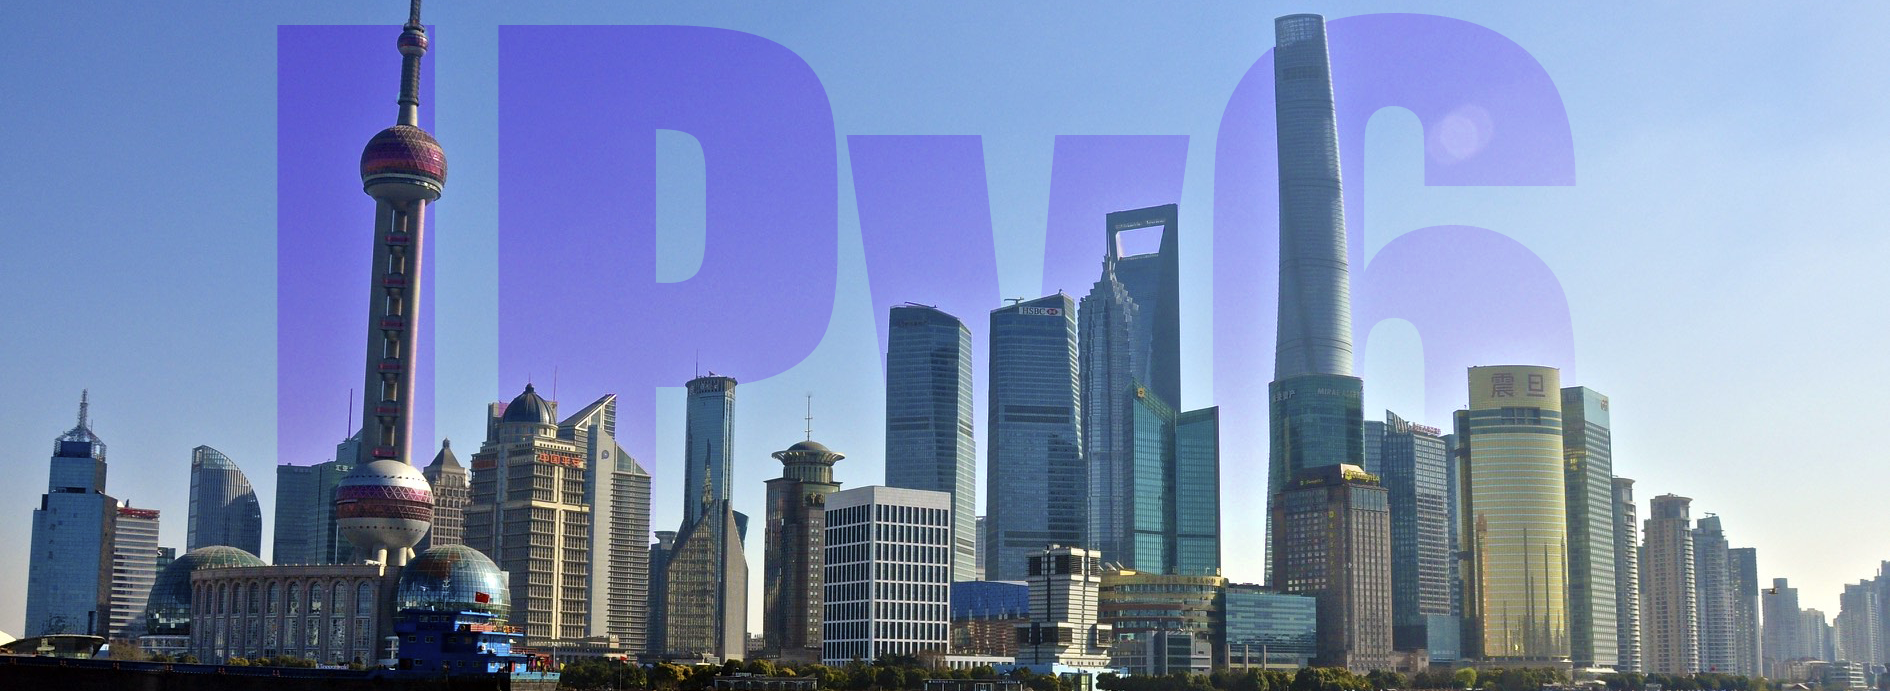 China Telecom's IPv6 efforts are beginning to show in the numbers